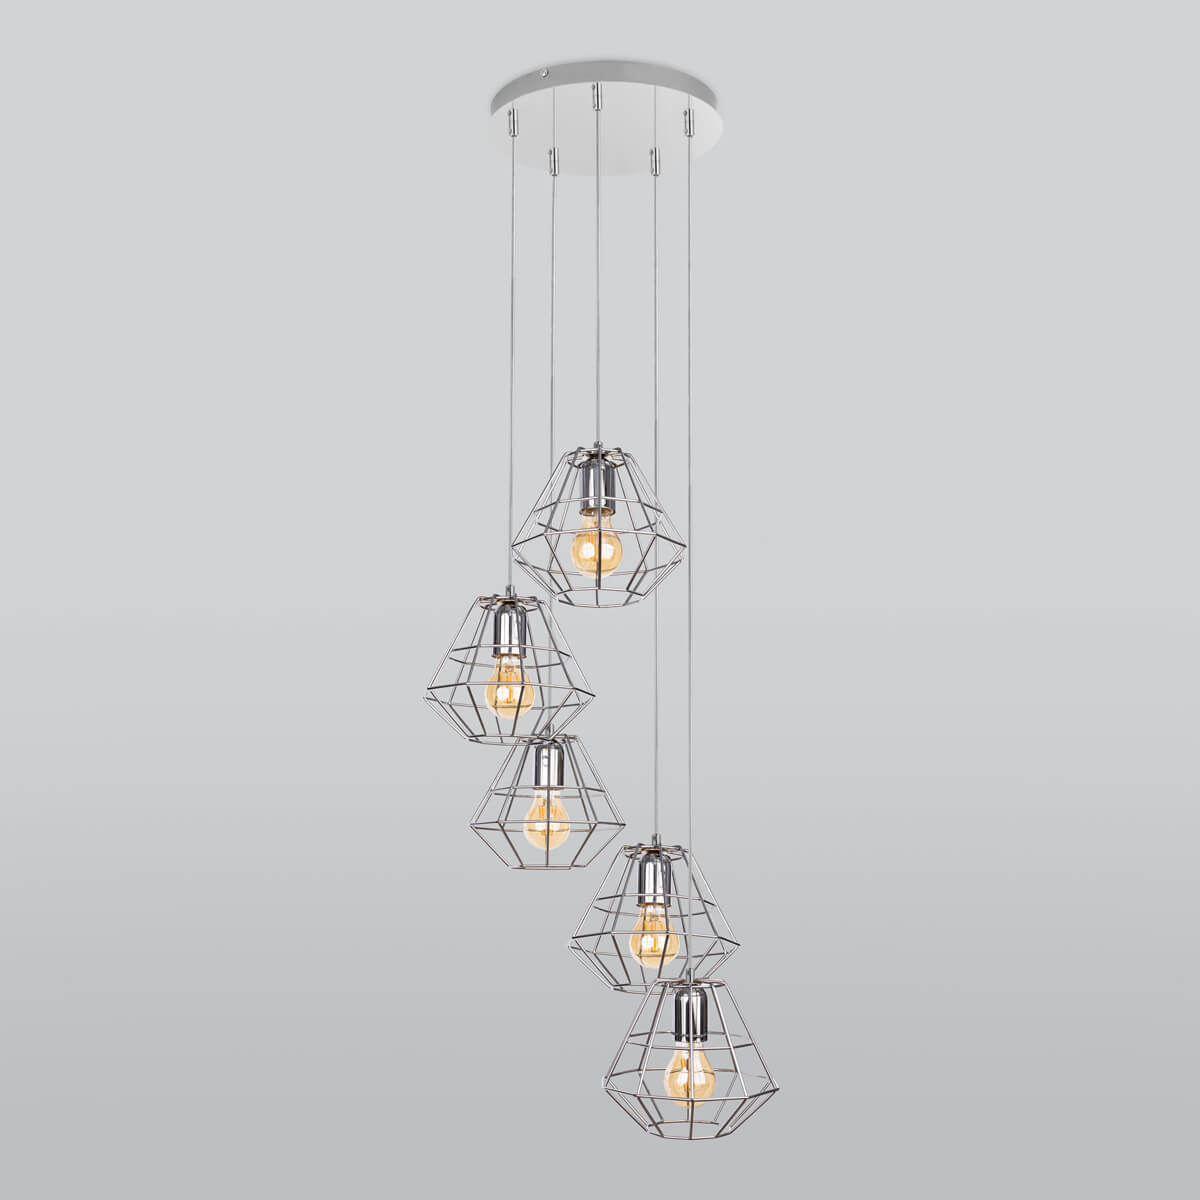 Светильник TK Lighting 4289 Diamond Silver